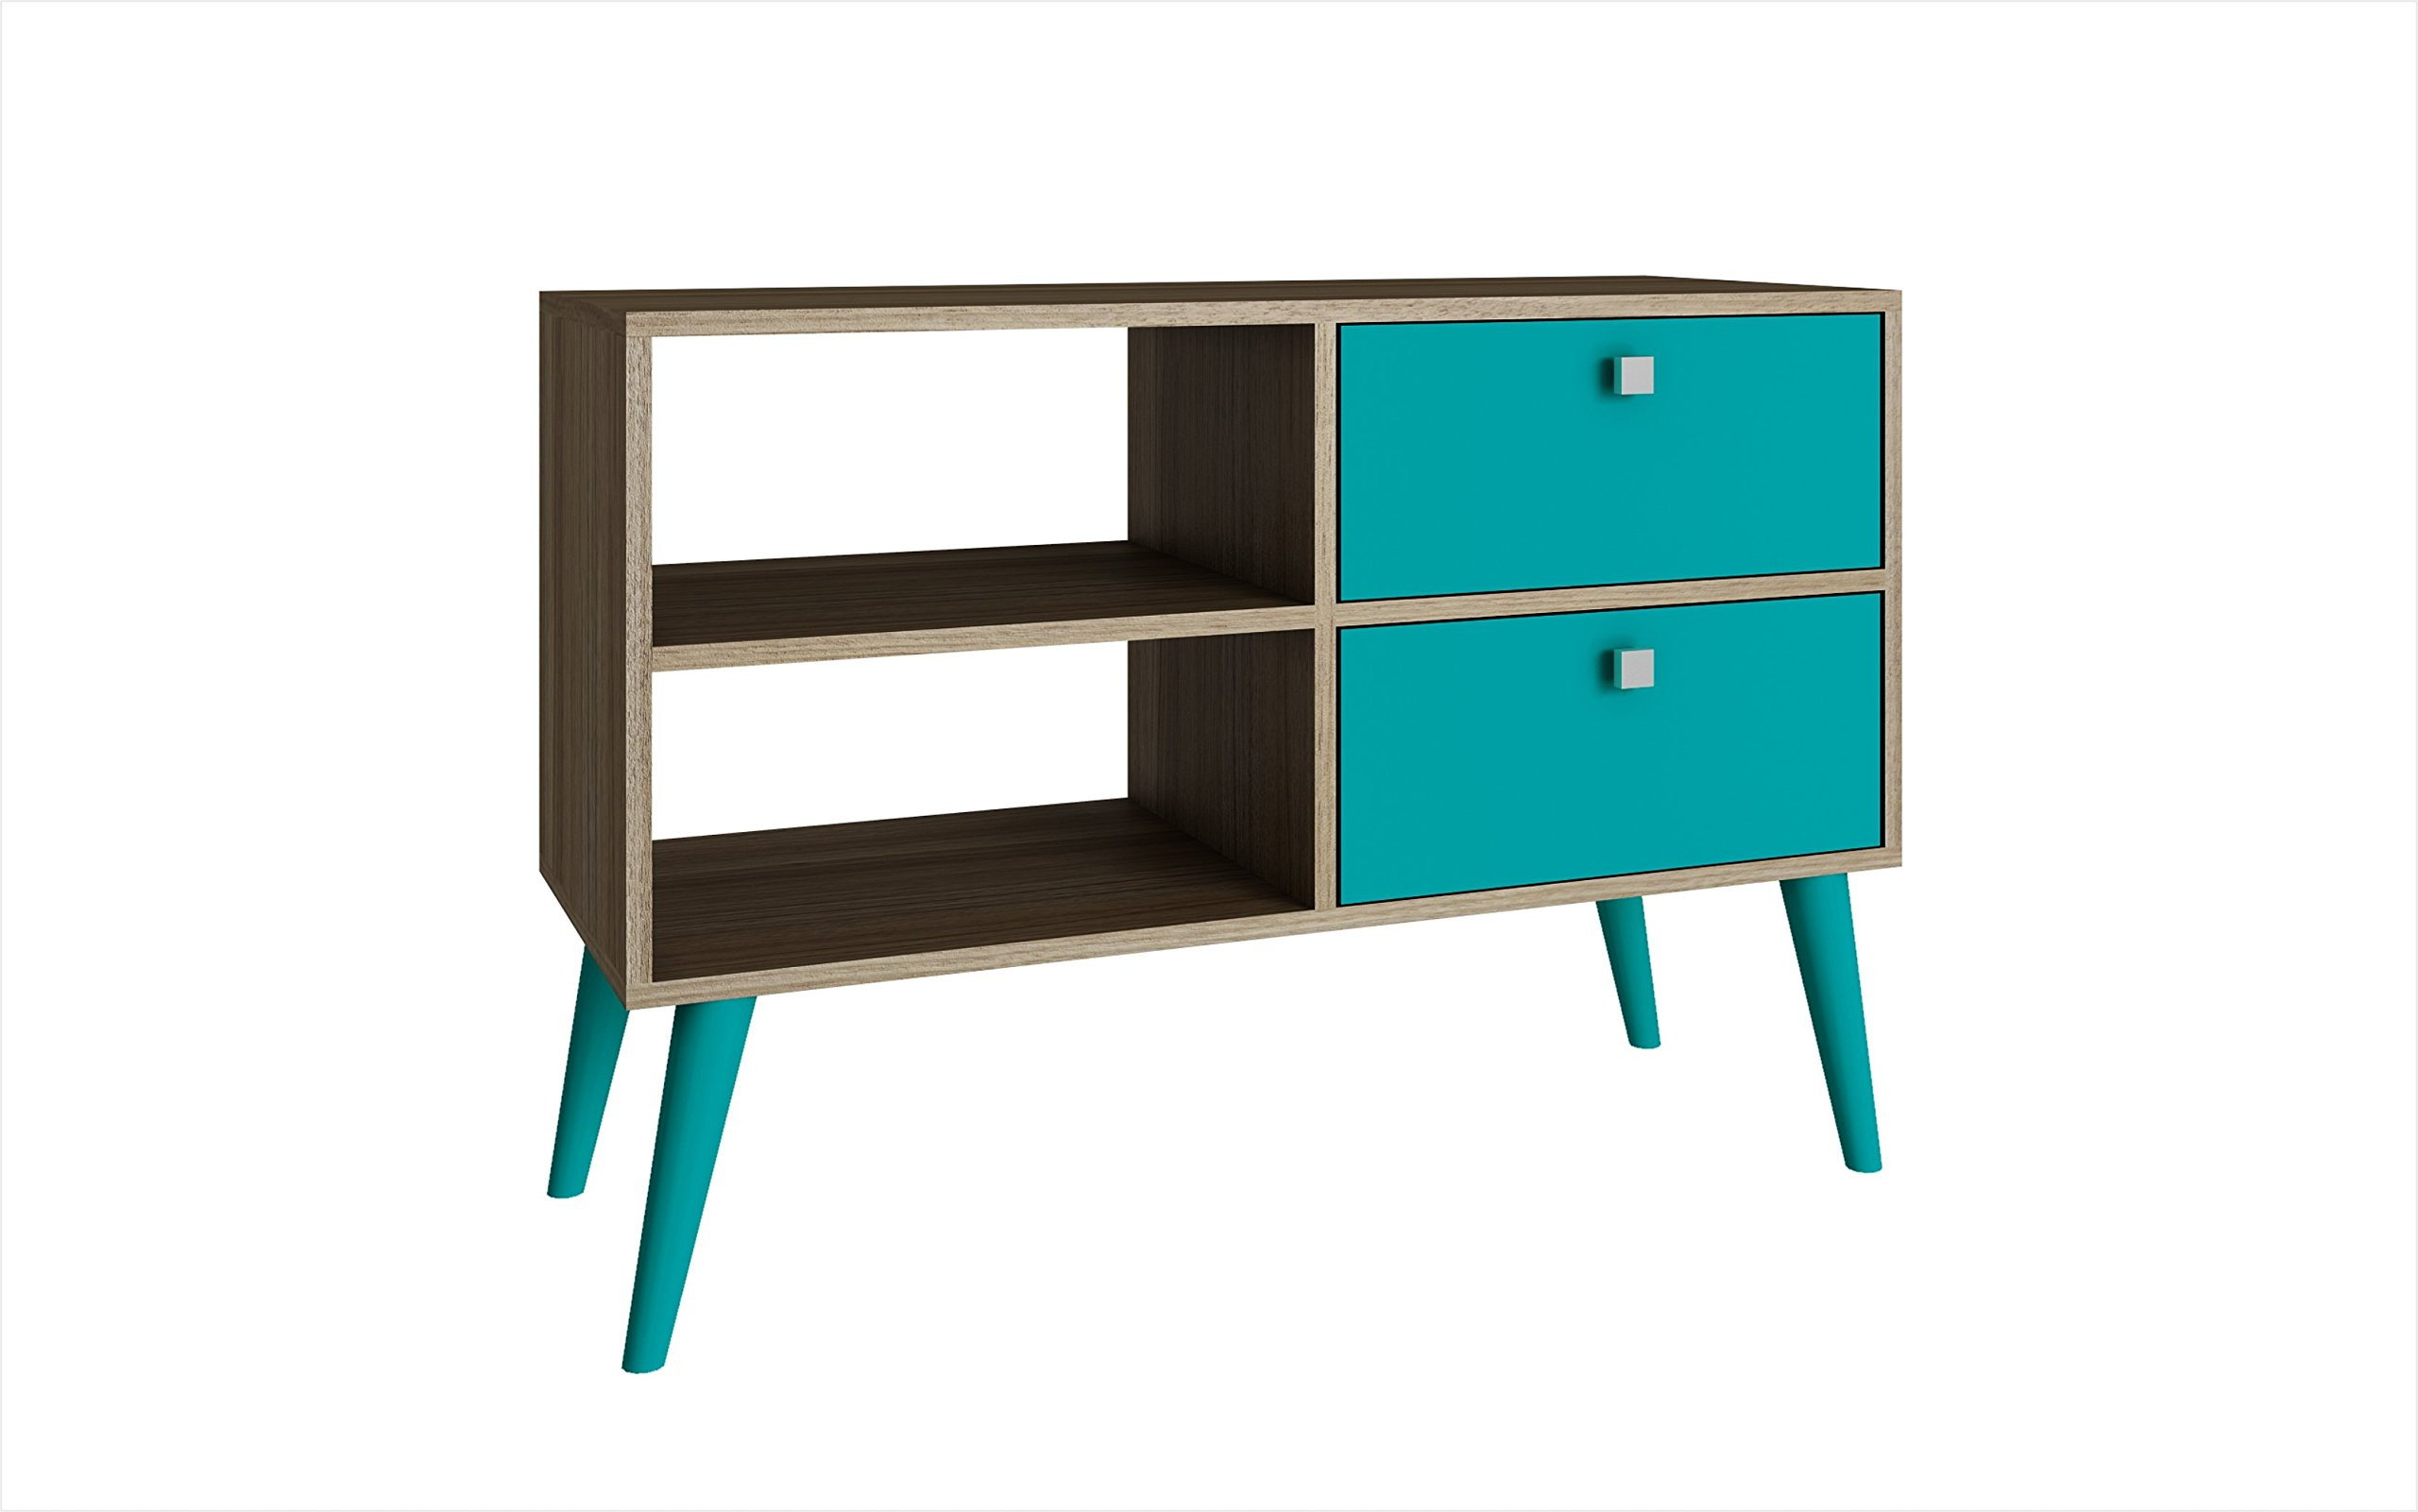 """Manhattan Comfort Dalarna Series Long Tabletop TV Stand Console with Open Shelf Design and 2 Drawers, Oak and Aqua - PRACTICAL SIZE: The TV Stand Measures 24.8""""H x 35.43""""L x 13.78""""D and Weighs Approx 39 Lbs, The TV Stand Arrives with Assembly Required and  Features a Fluorescent and Vibrant Color Finish UNIQUE OPEN SHELF: The TV Stand Features 2 Unique Open Shelves for Storing Media, Cable Box's, Playstation, Xbox Slim, Blu-ray Players and More on the Left Side. The Right Side Features 2 Drawers That Are Finished With a Uniquely Shaped Square Knob UNIQUE SPLAYED ROUNDED LEGS: The TV Stand Features a Unique Set of Rounded Legs Making It Sturdy and Adding a Unique Splayed Leg Design to The Modern Décor, The Splayed Legs Are Well Made and Sturdy - tv-stands, living-room-furniture, living-room - 71iIy01bBhL -"""